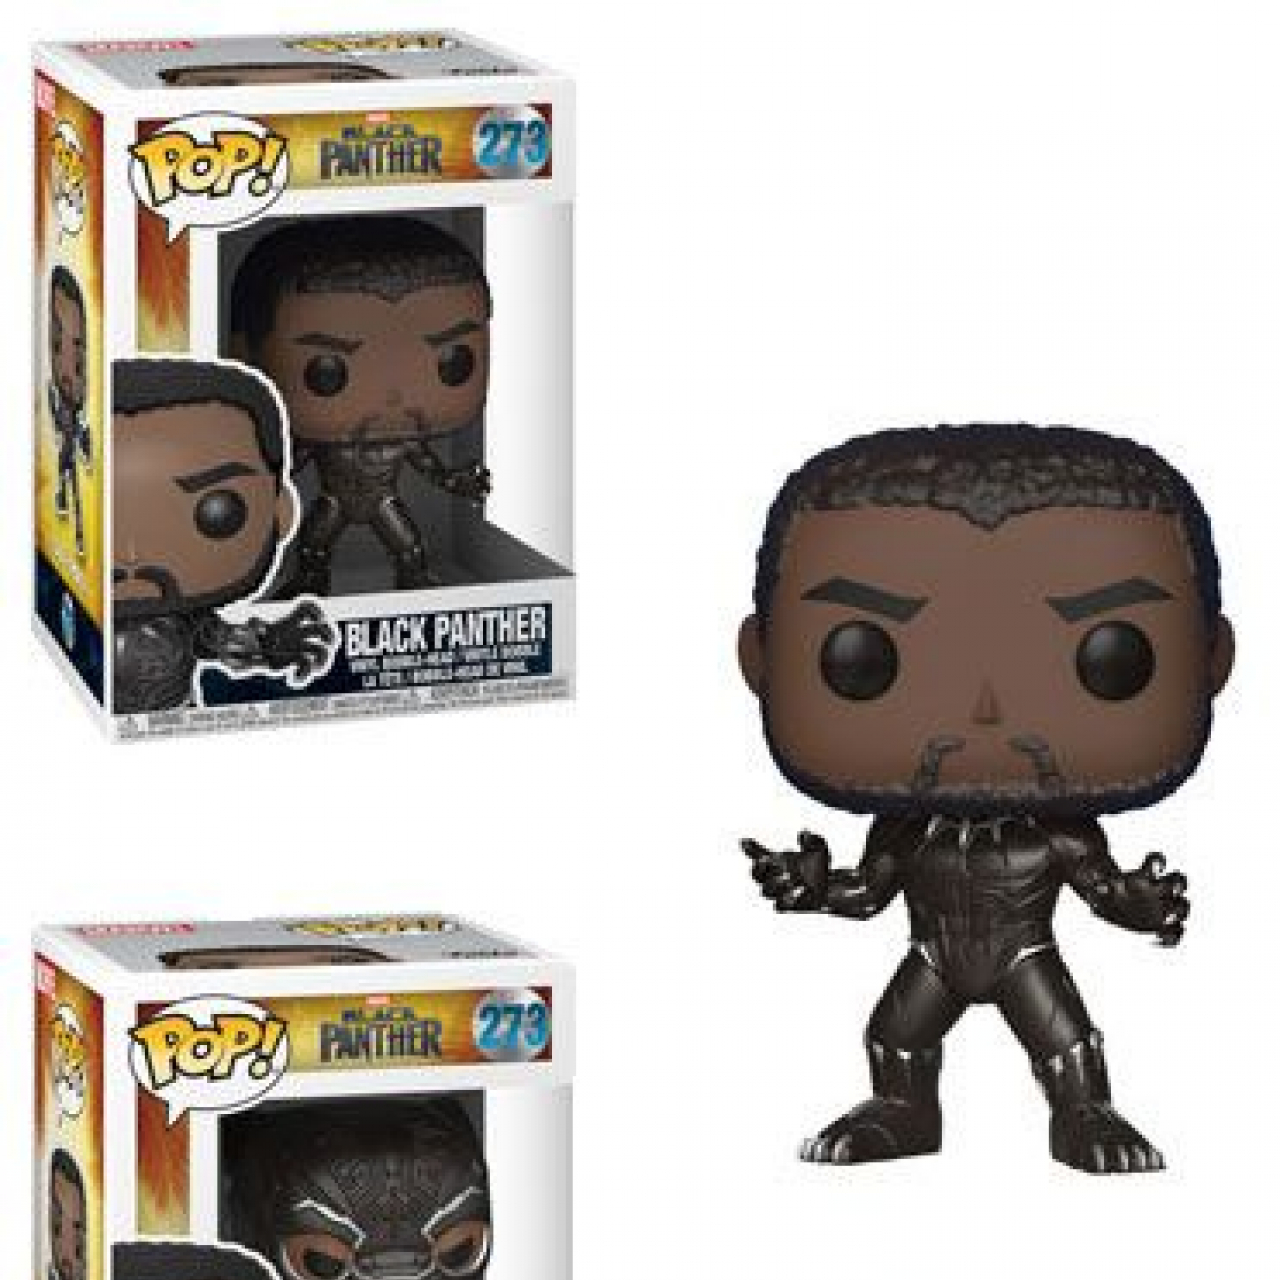 Black Panther Movie POP! Movies Figures Black Panther 9 cm Assortment (6)